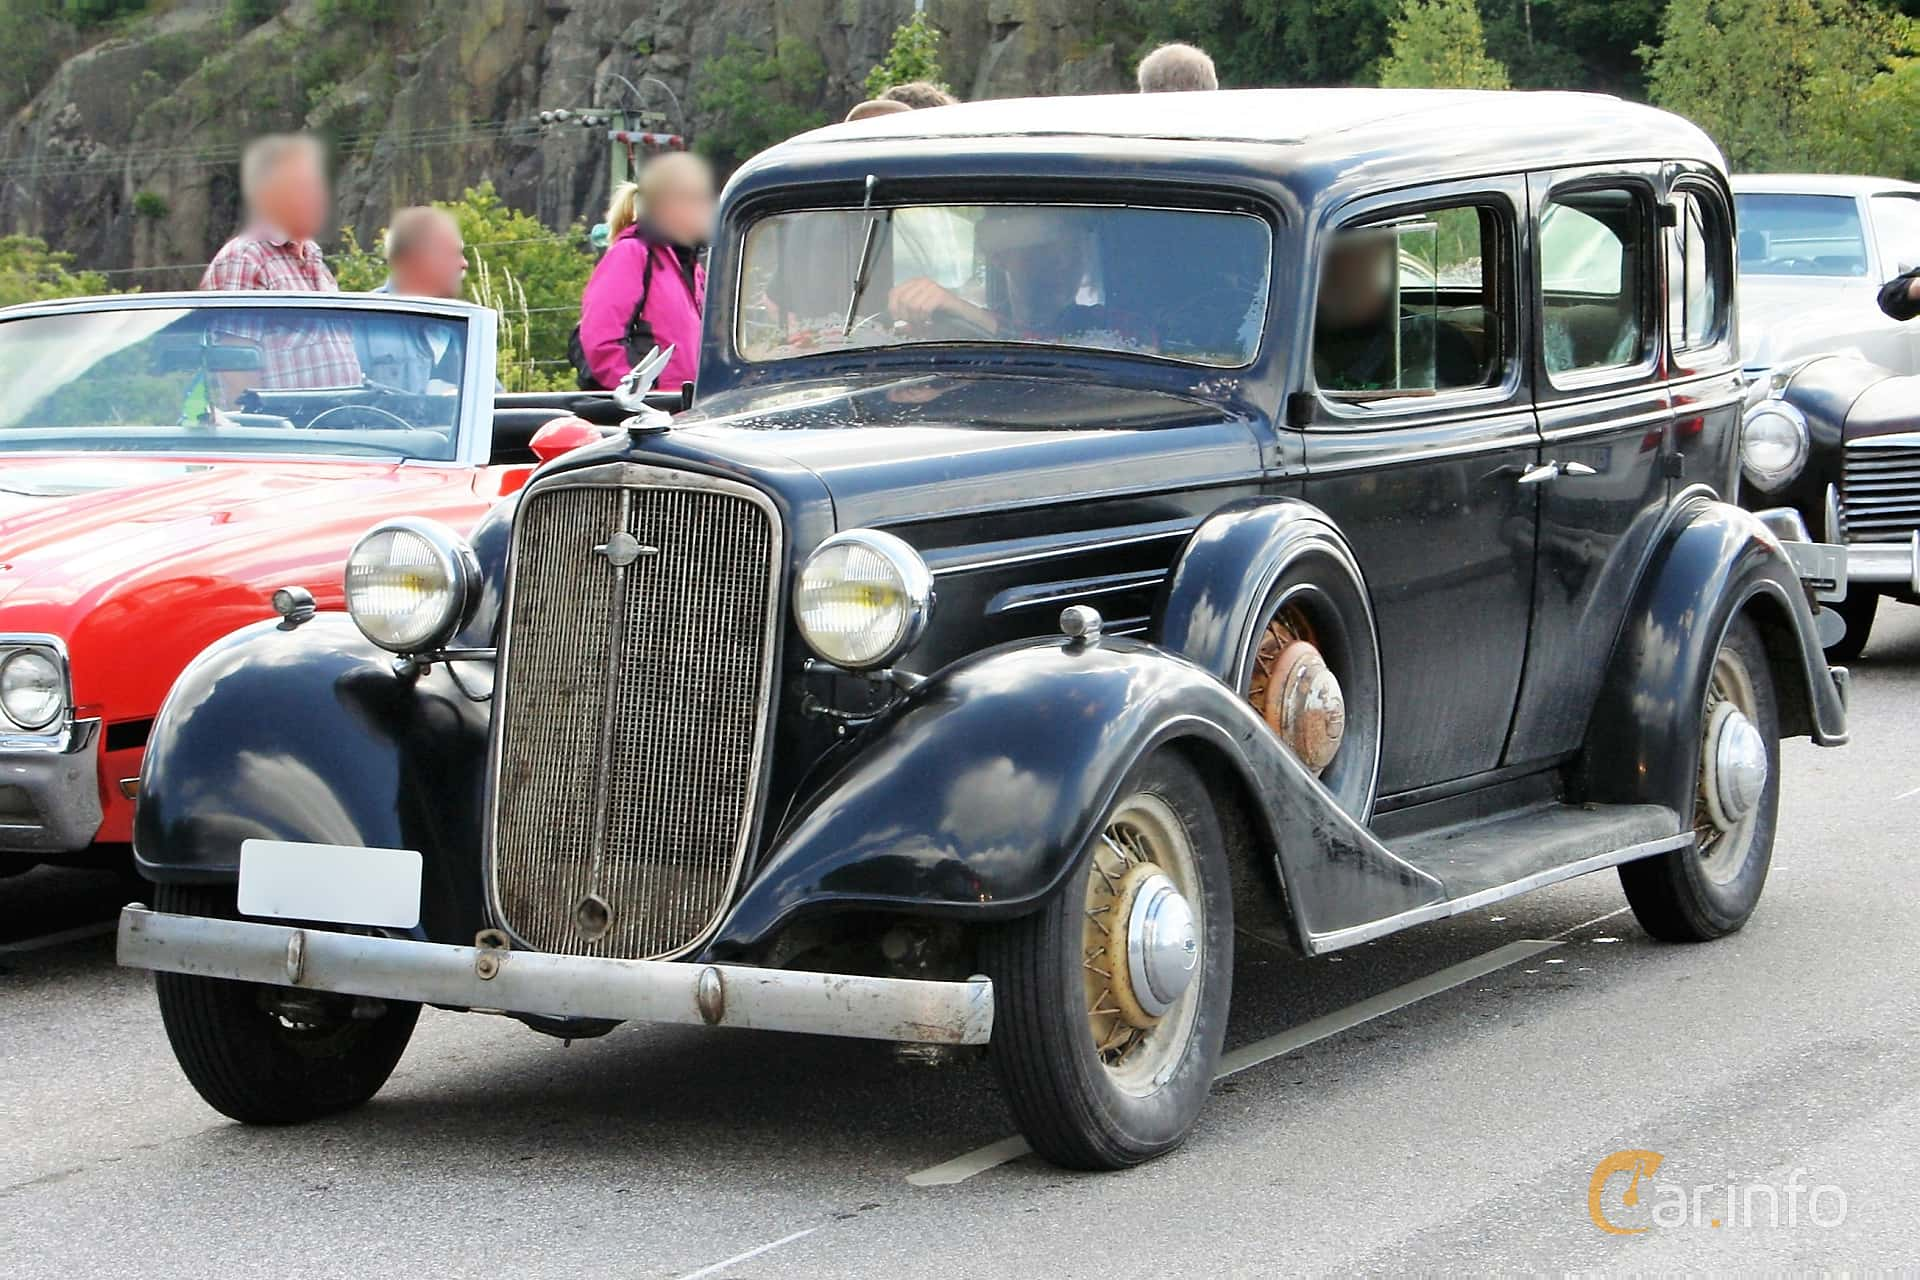 1 images of Chevrolet Master Sedan 3 4 Manual, 81hp, 1934 by